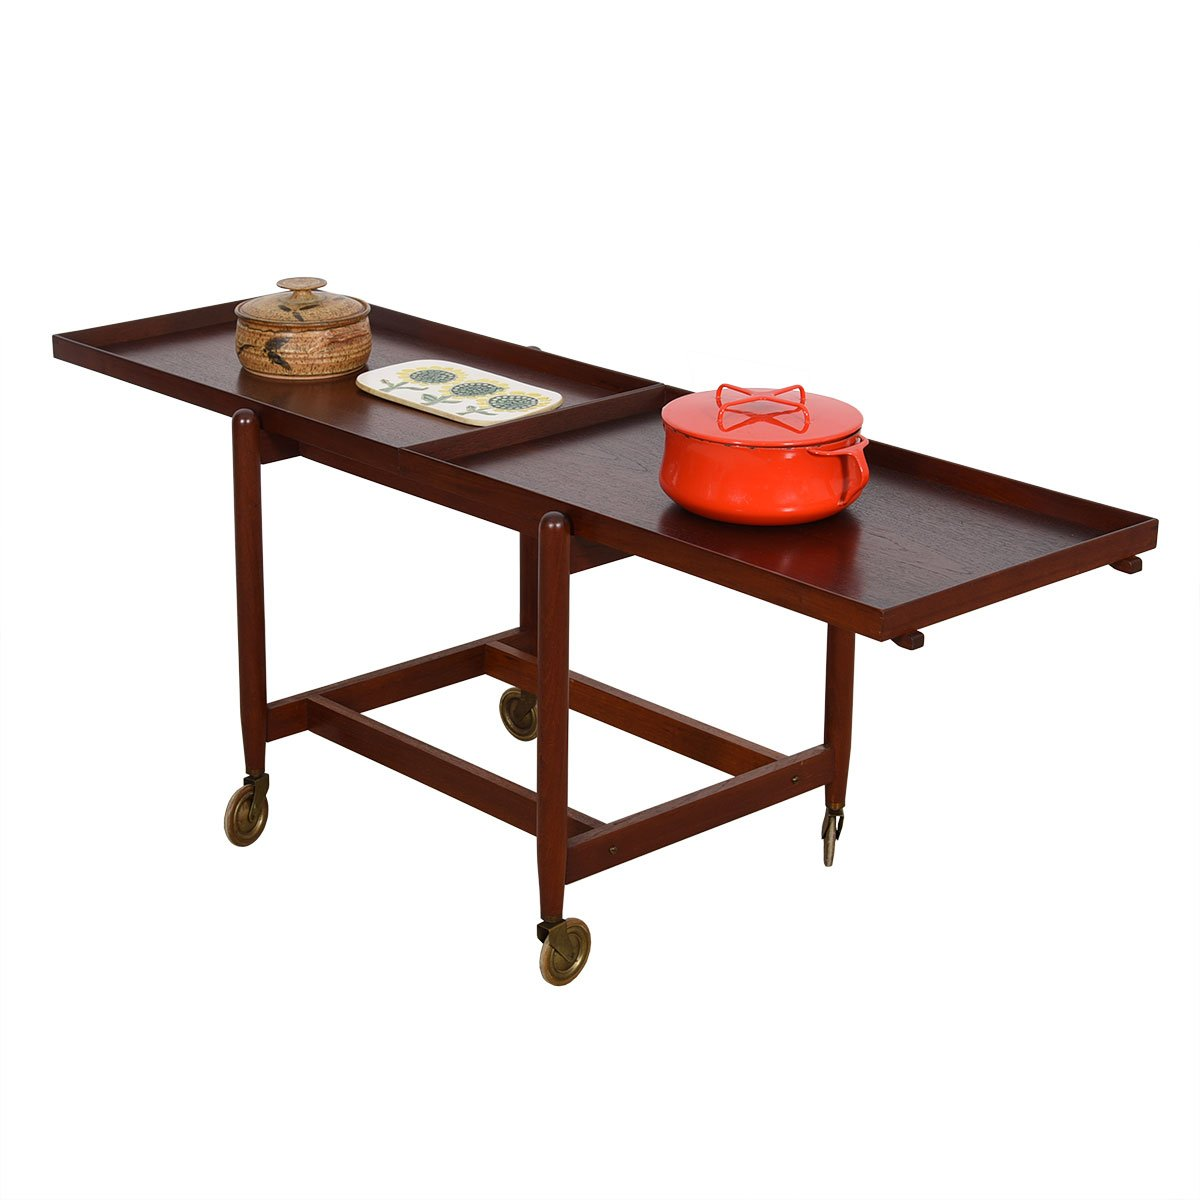 Early Danish Teak Expanding Bar Cart w/ Removable Tray